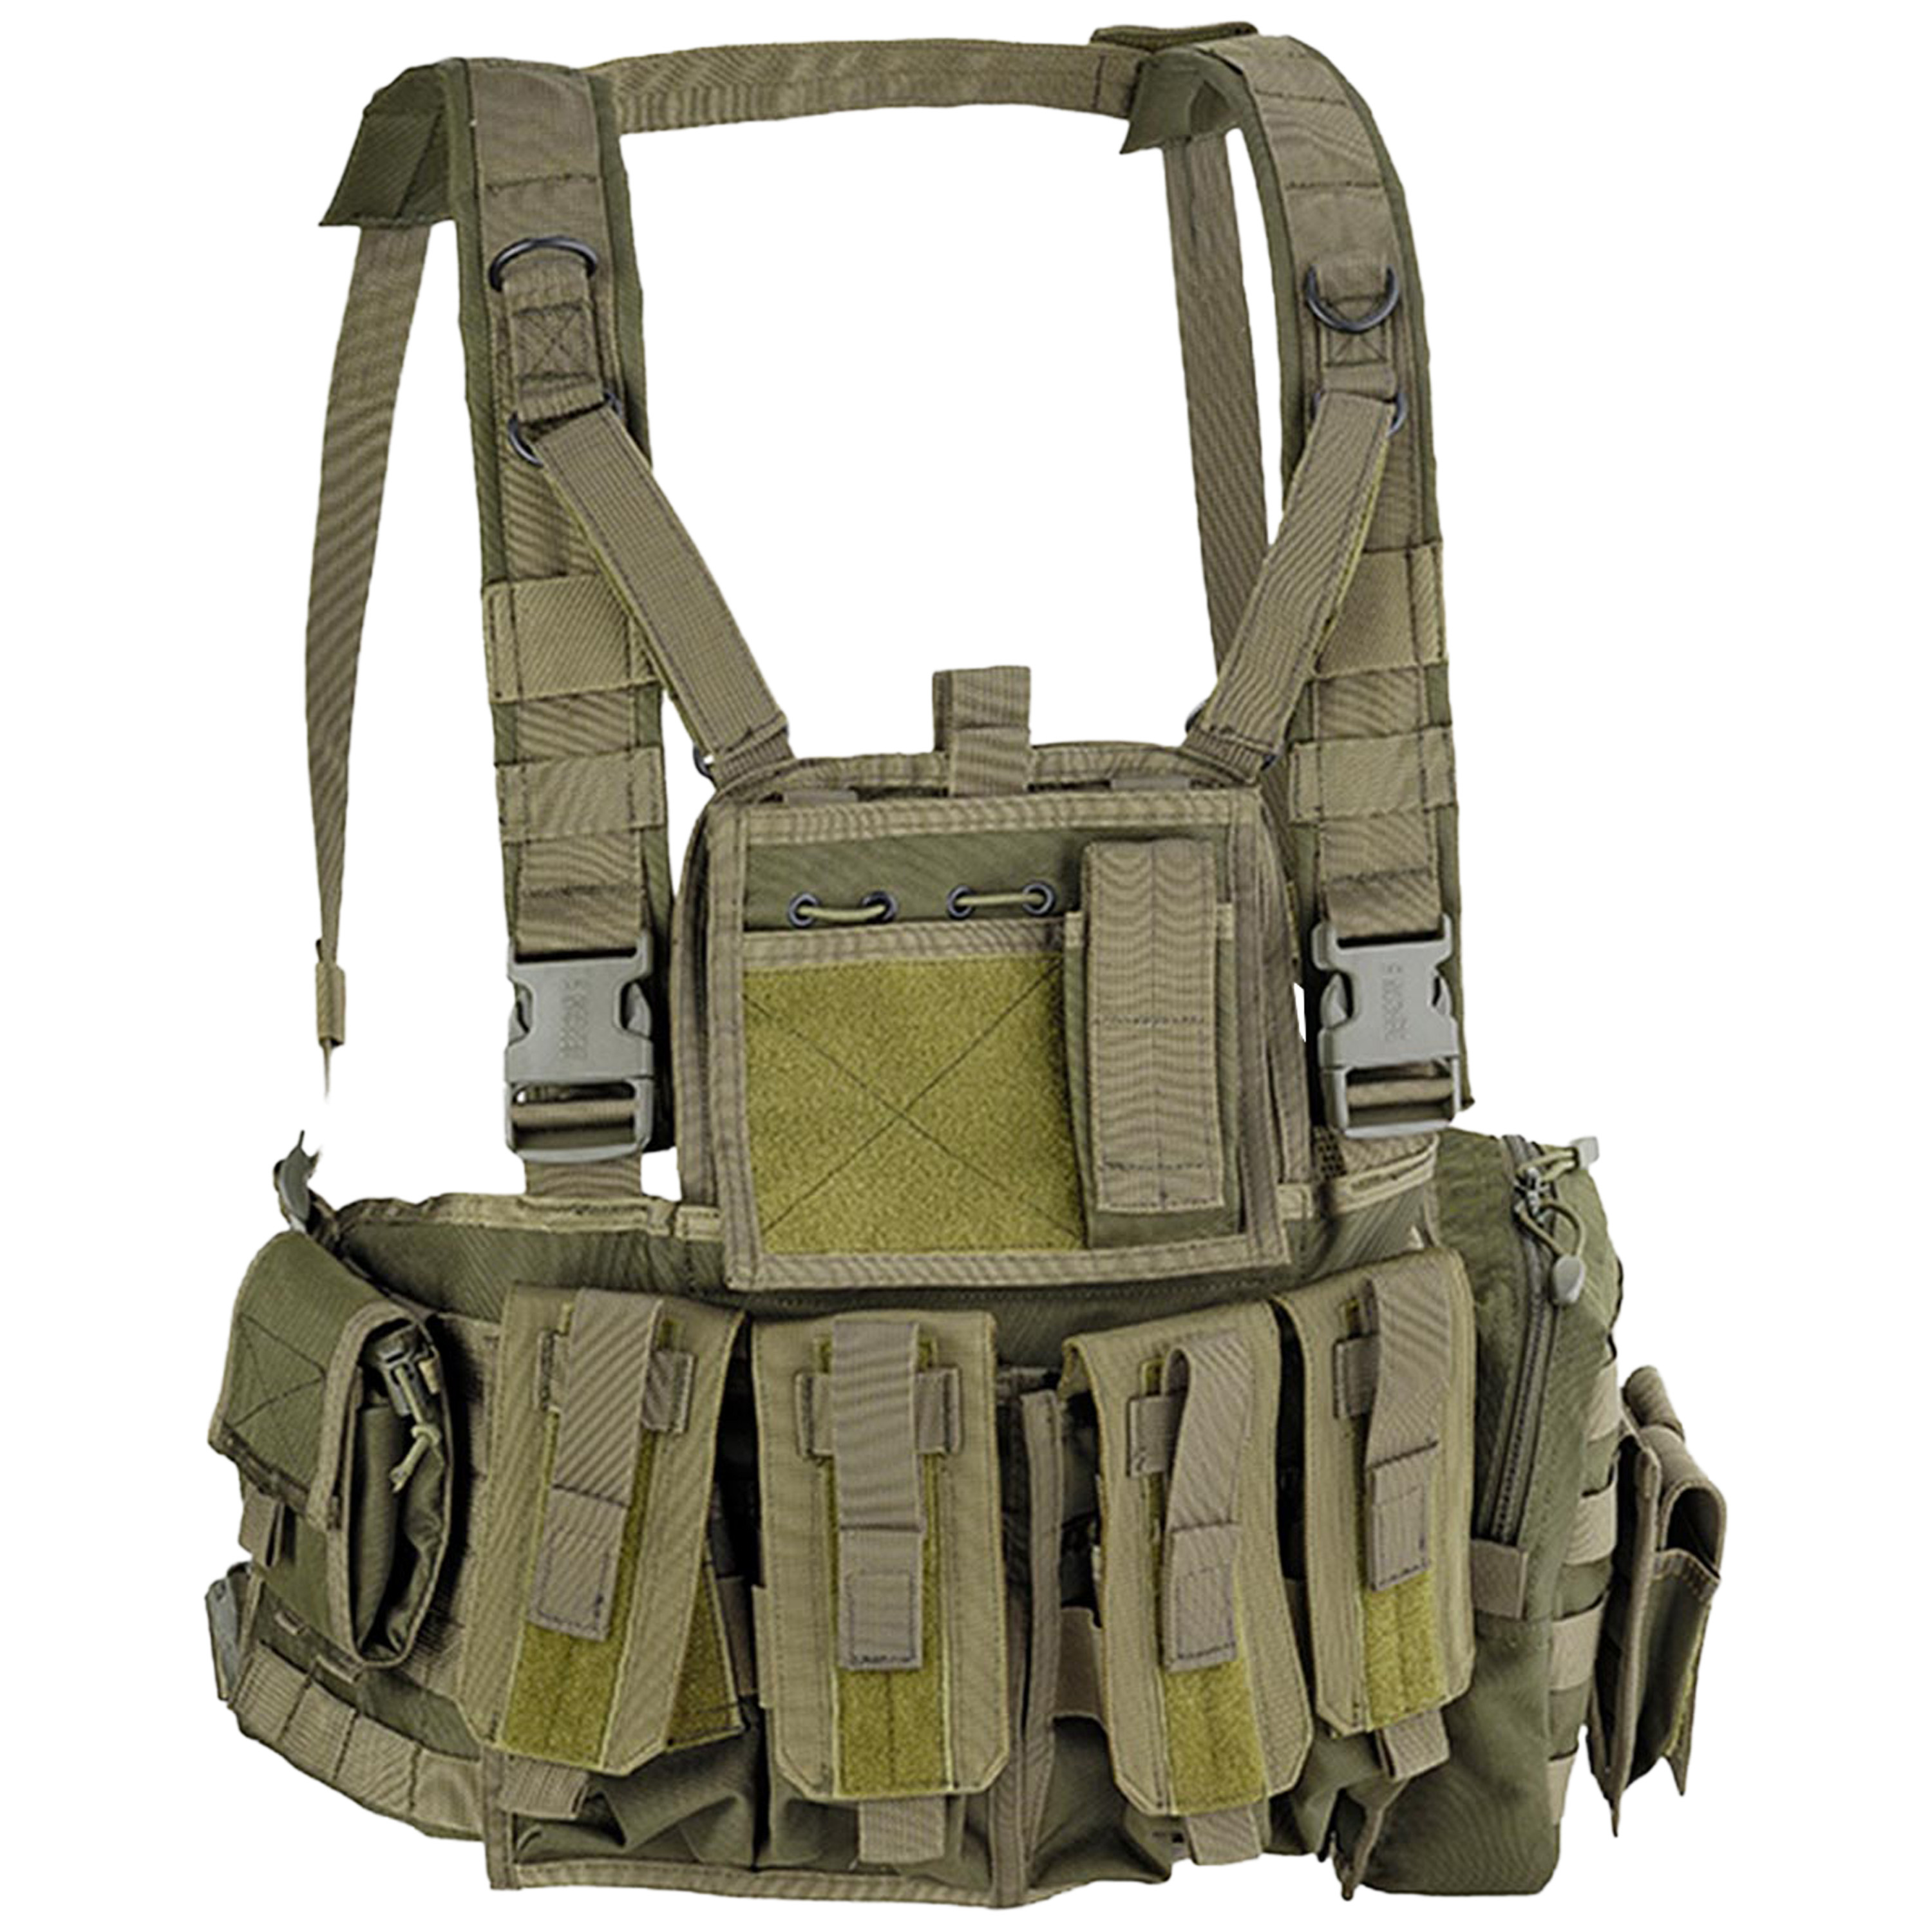 Defcon 5 Chest Rig OD green